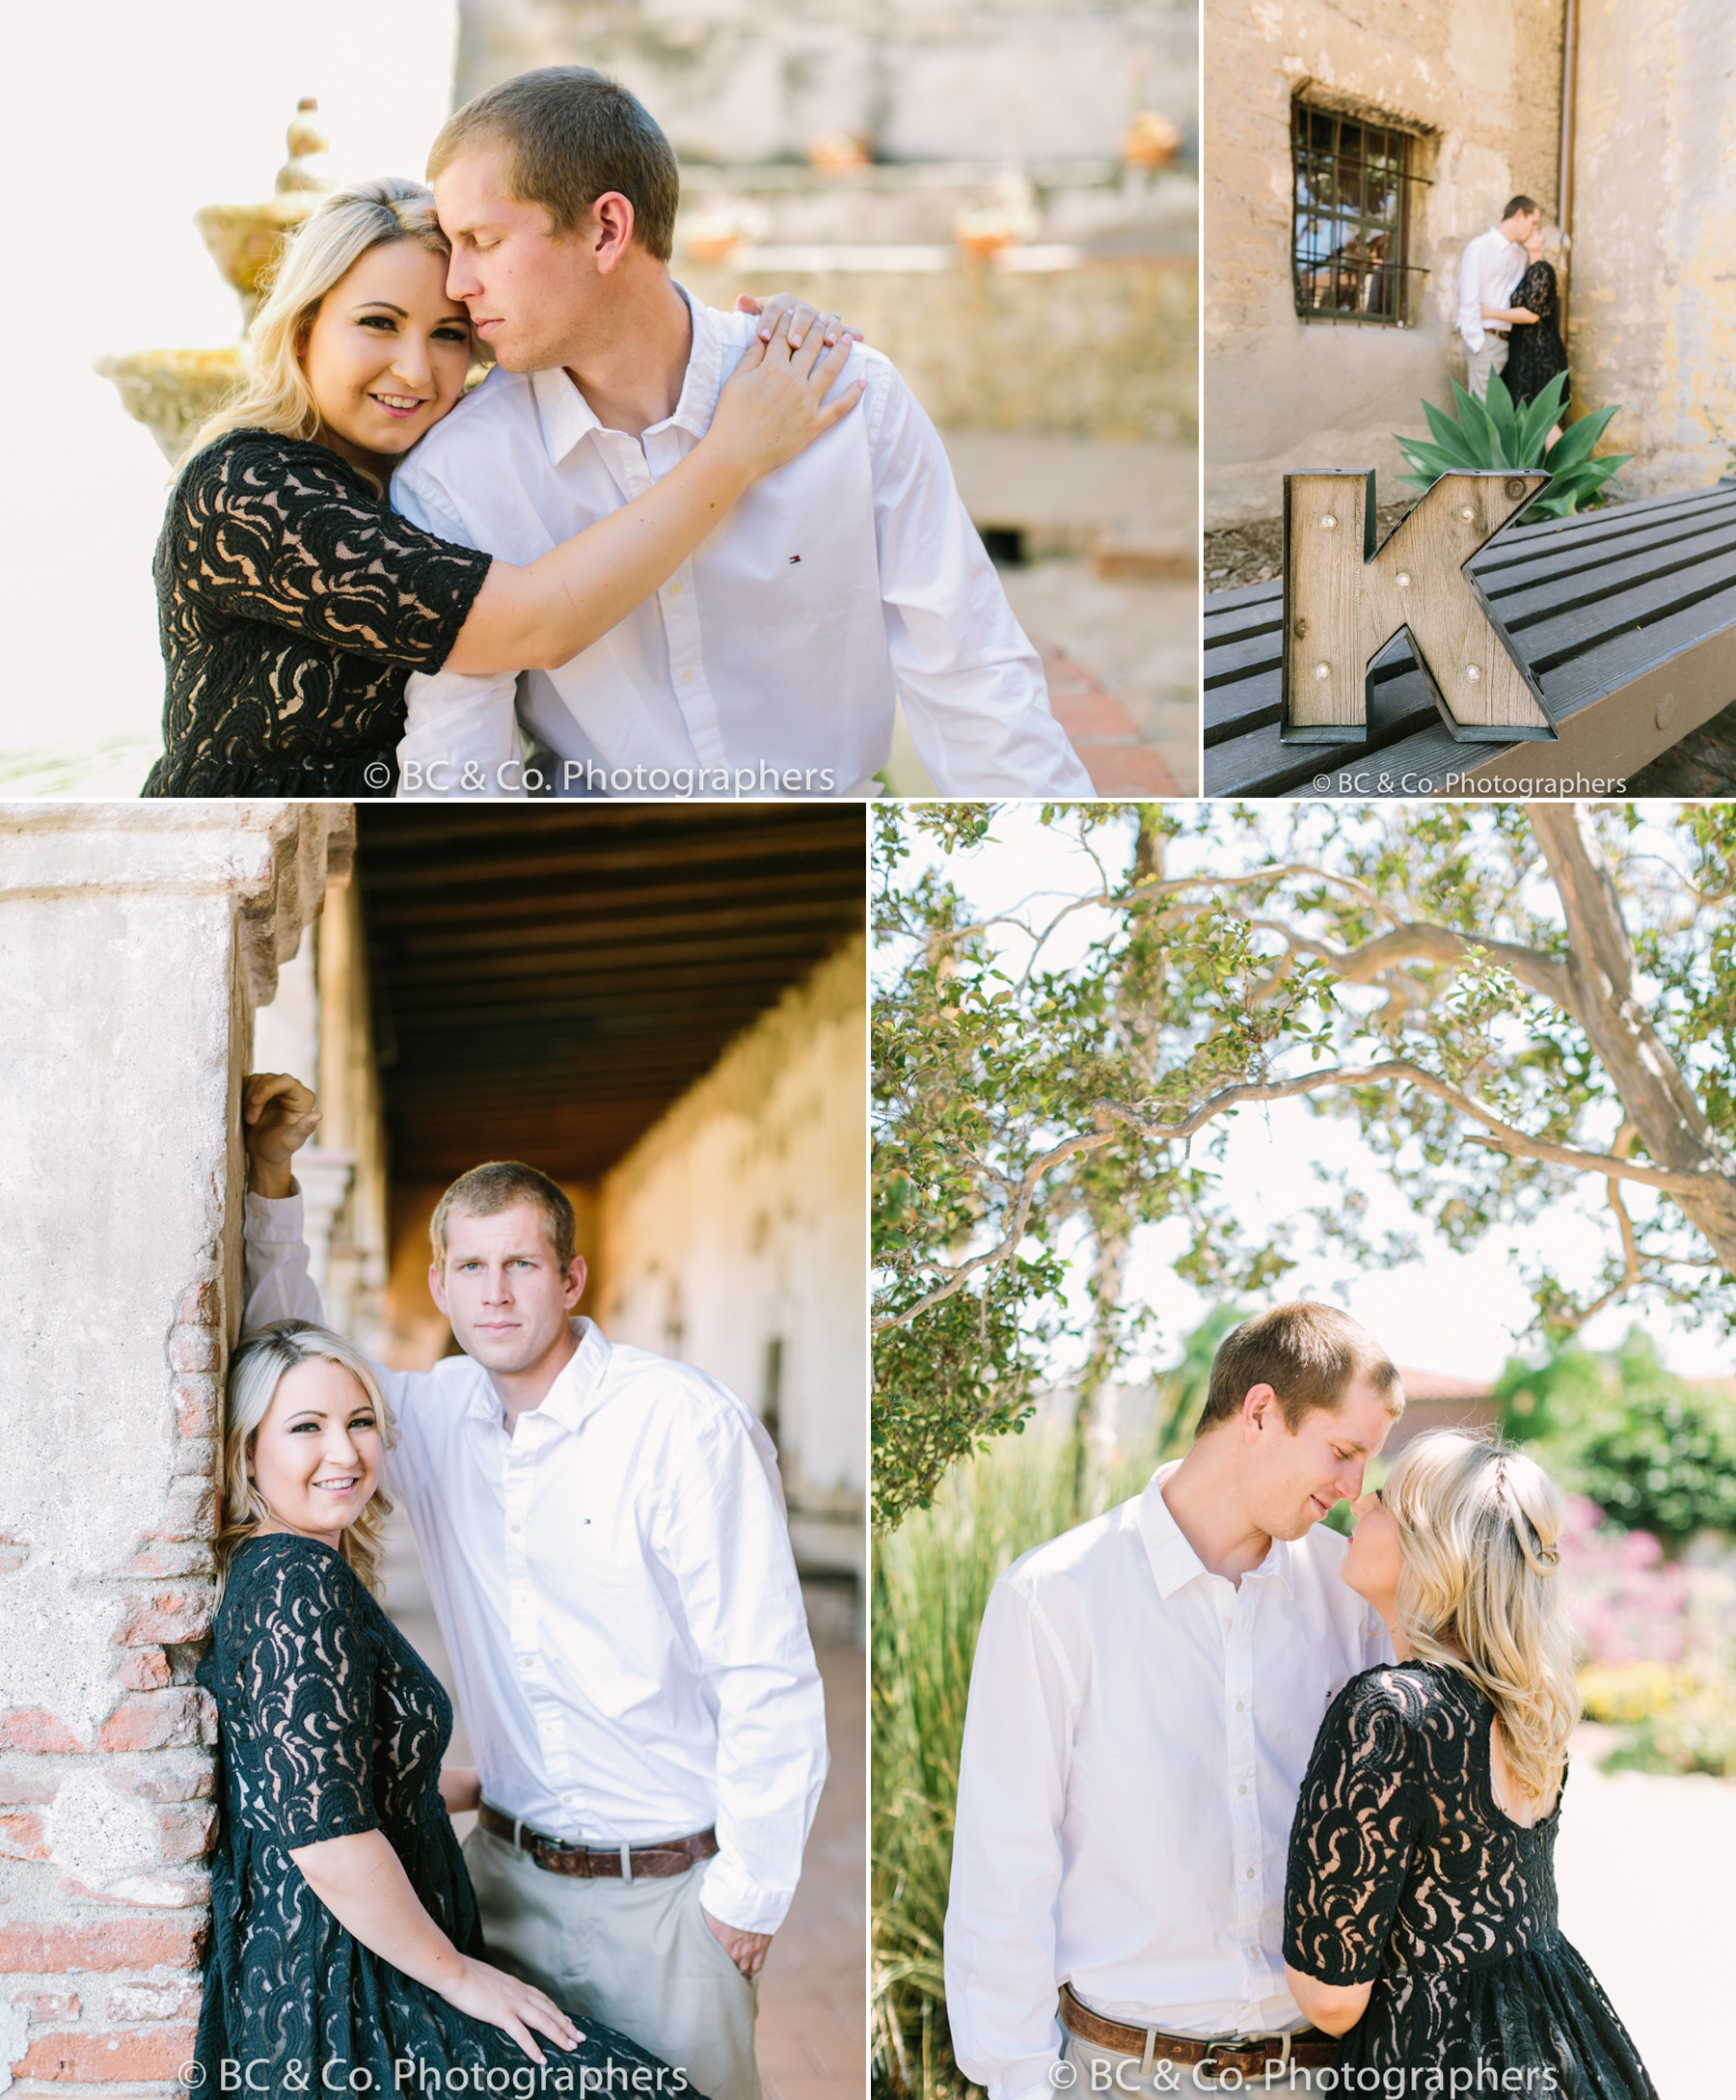 Orange-County-Wedding-Photography-Brianna-Caster-And-Co-Photographers 4